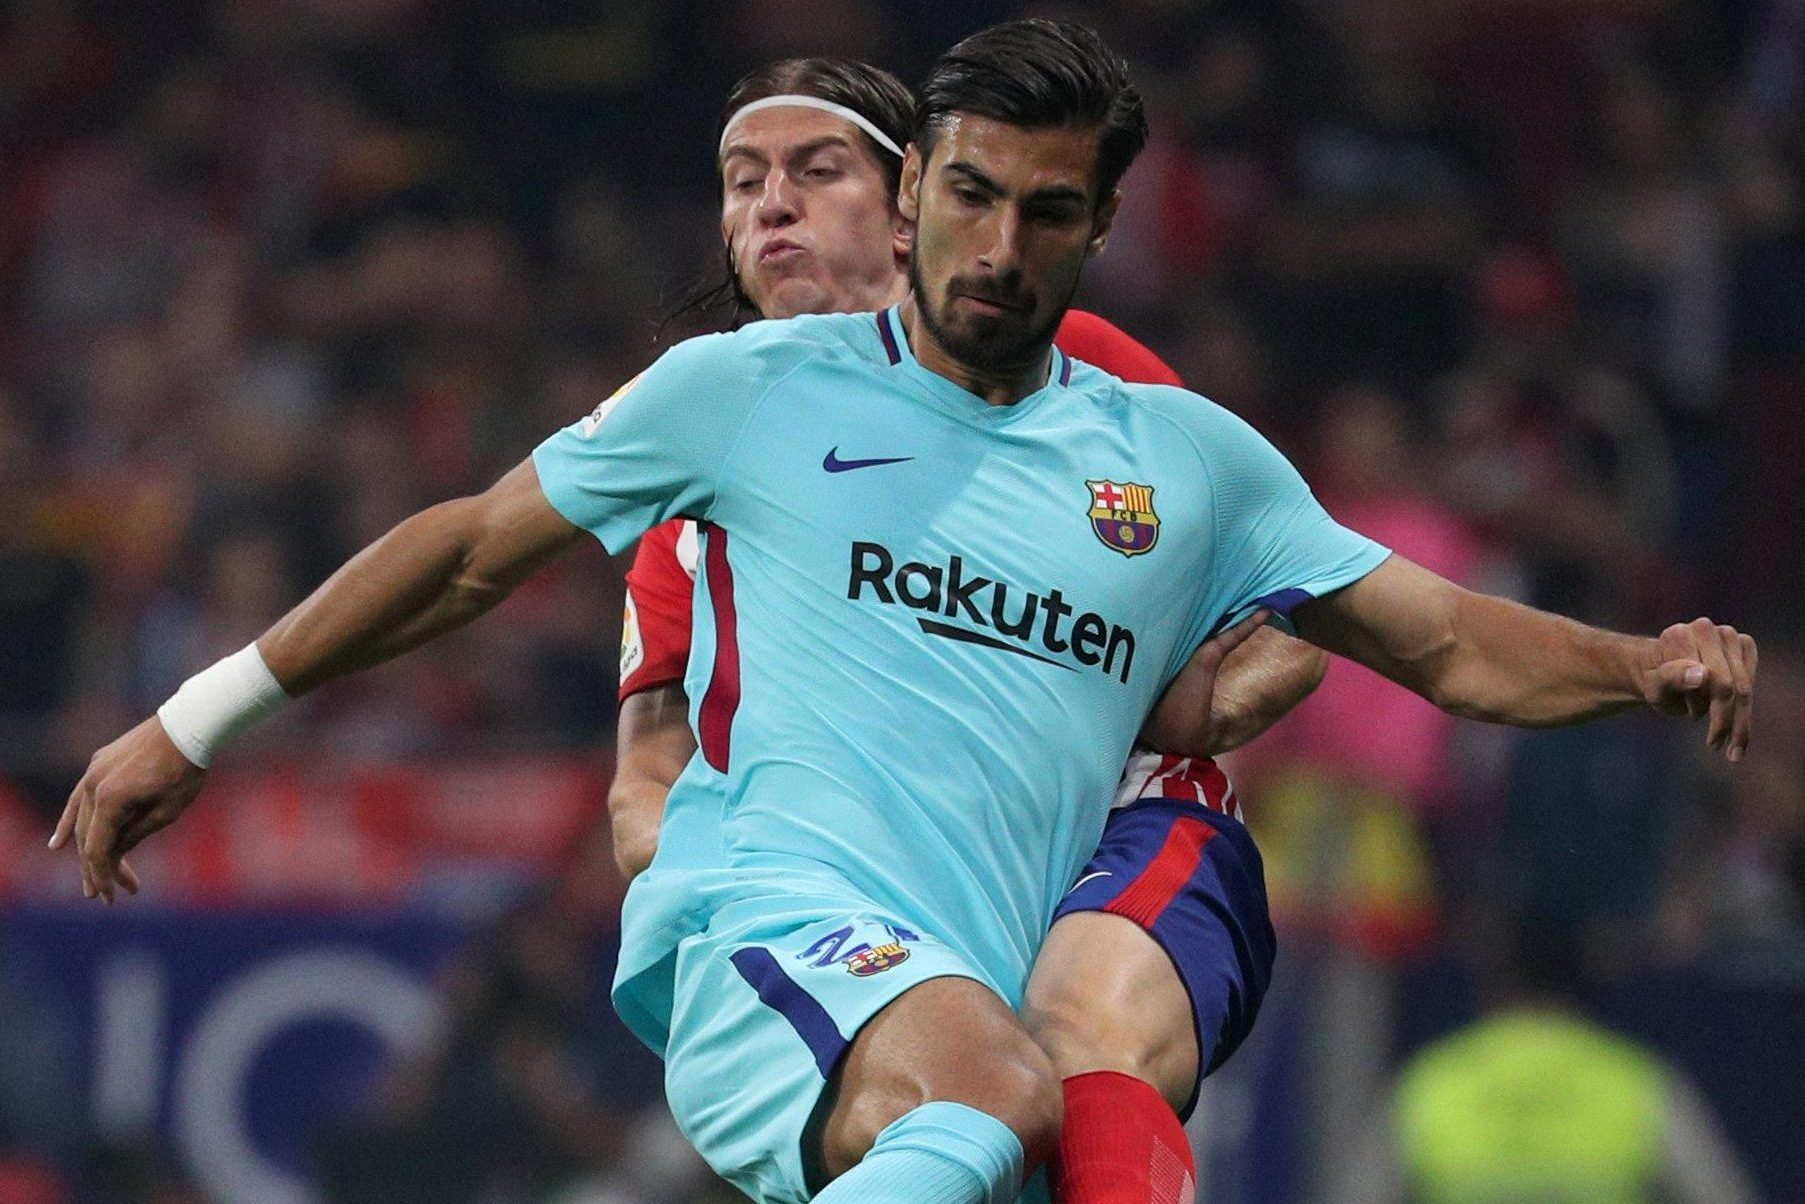 Barcelona could hand Andre Gomes shock start against Chelsea in Champions League